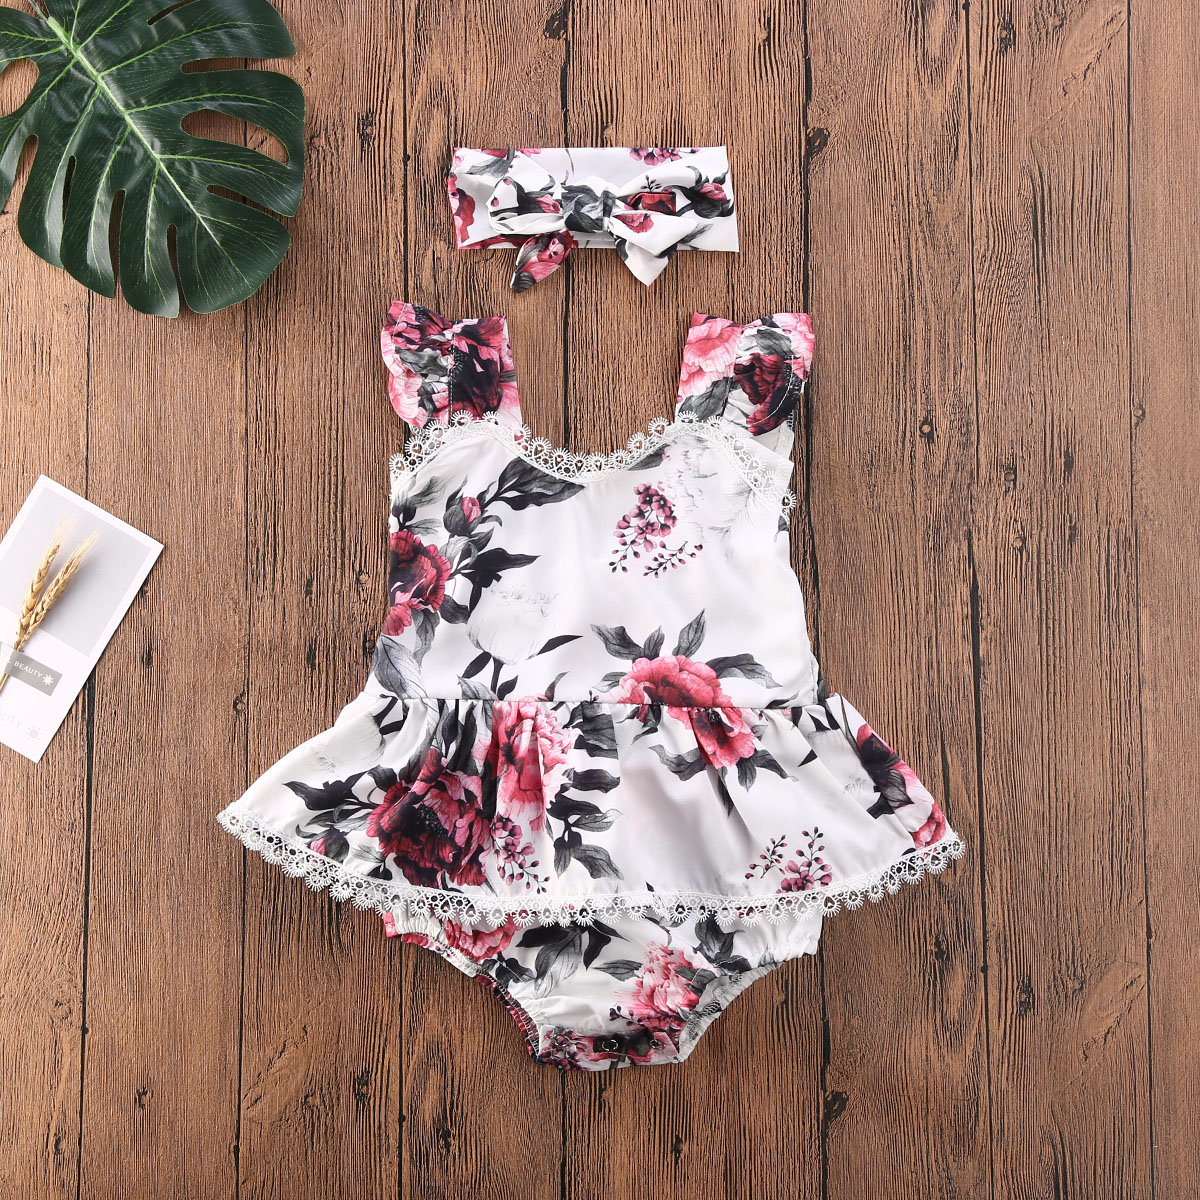 Emmababy Newborn Baby Girl Clothes Flower Print Lace Ruffle Tassel Sleeveless Romper Jumpsuit Headband 2Pcs Outfits Sunsuit